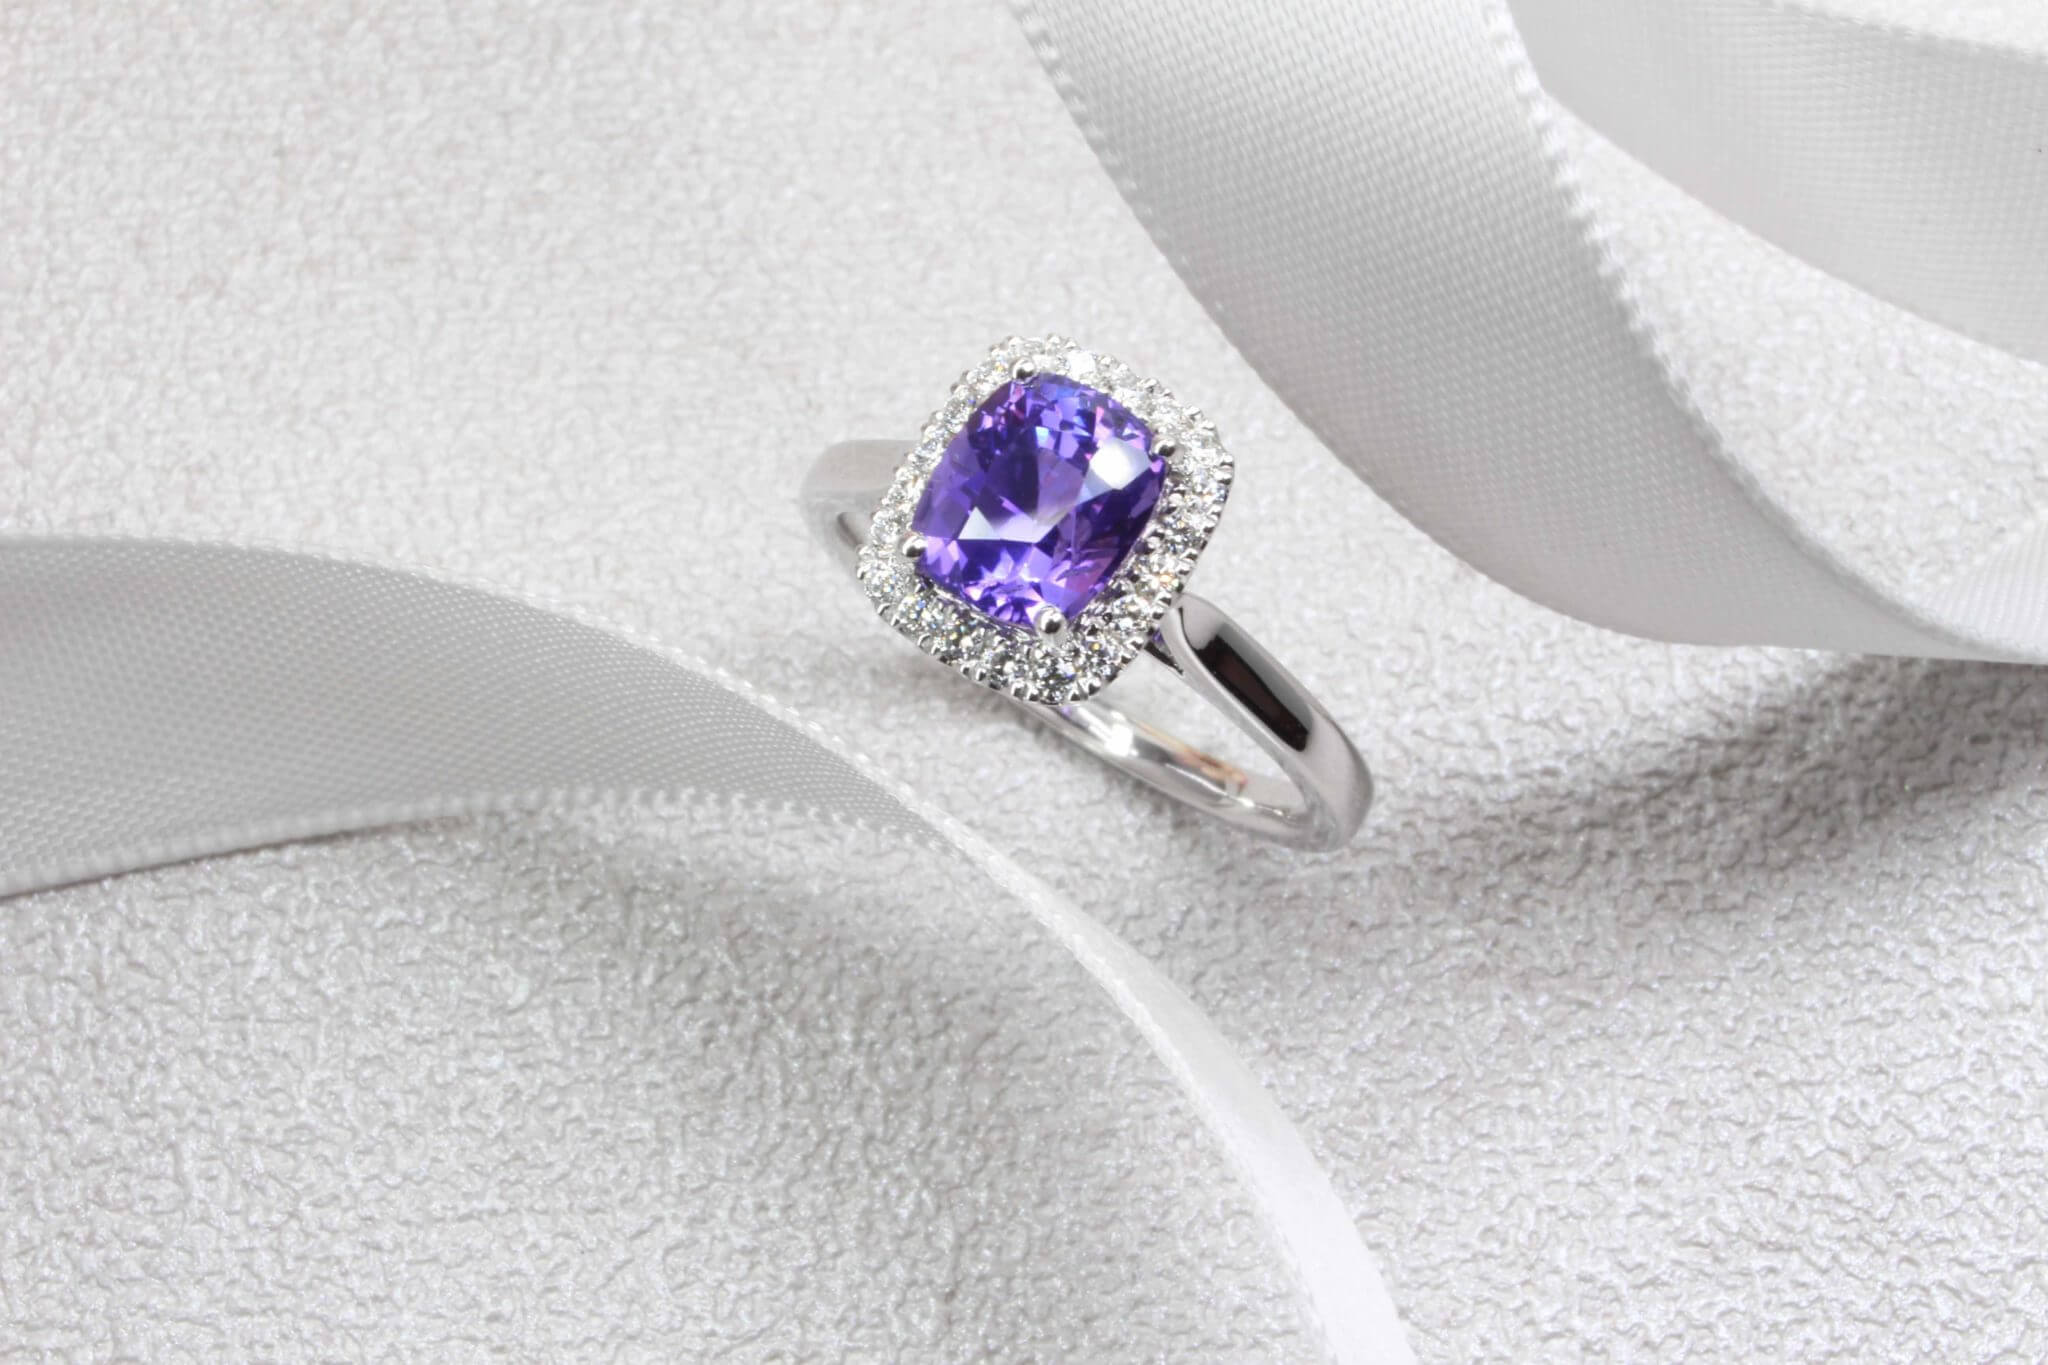 Violet Sapphire with halo round brilliant diamonds, coloured gemstone in violet and purplish shade. Unique customised sapphire ring from husband to wife | Local Singapore Jeweller in Customised Jewellery, design from sketch design jeweller - Private Jeweller